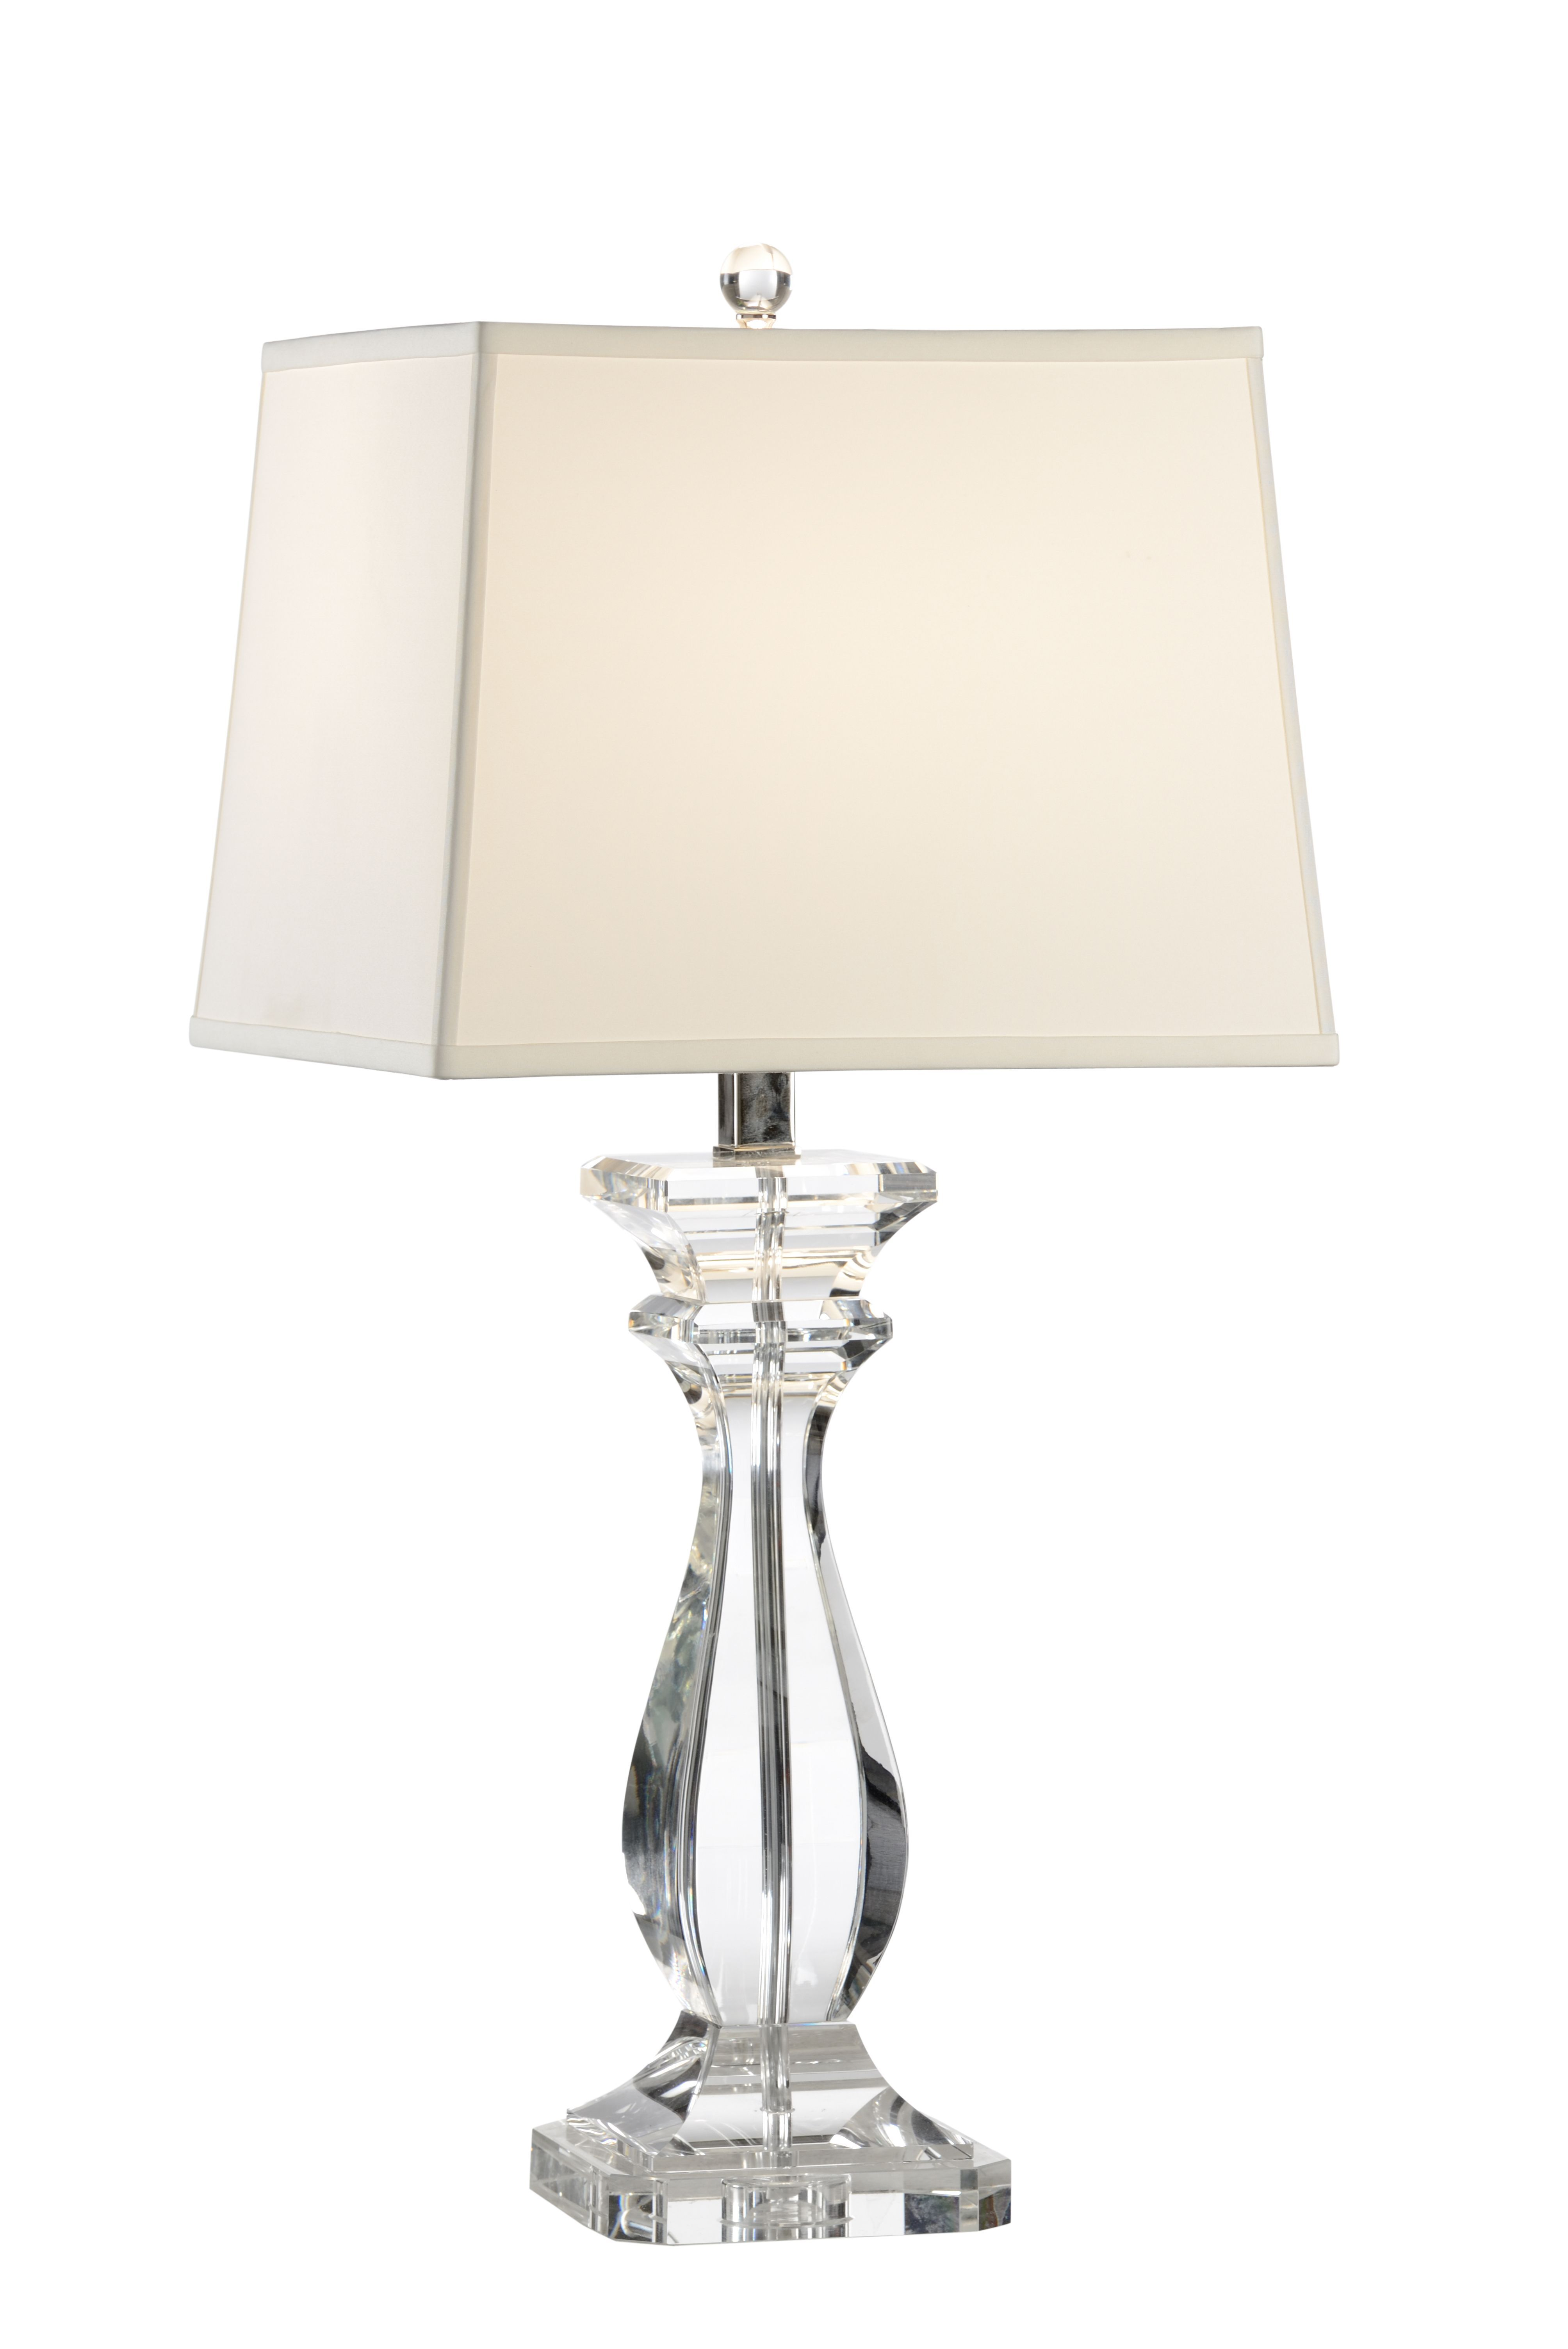 Solid Crystal Table Lamp With Nickel Details Crystal Table Lamps Crystal Lamp Lamp